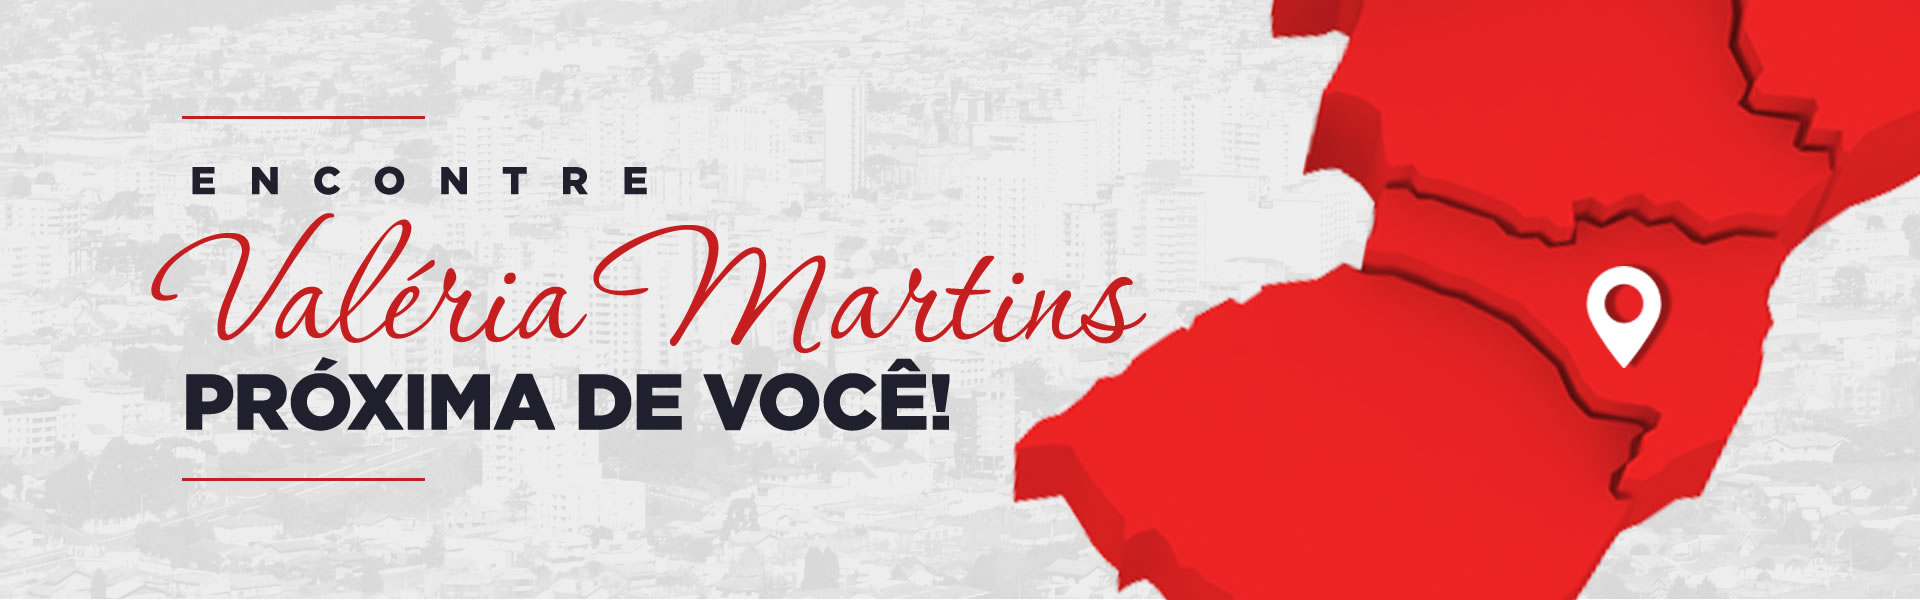 Banner Encontre a Valéria Martins